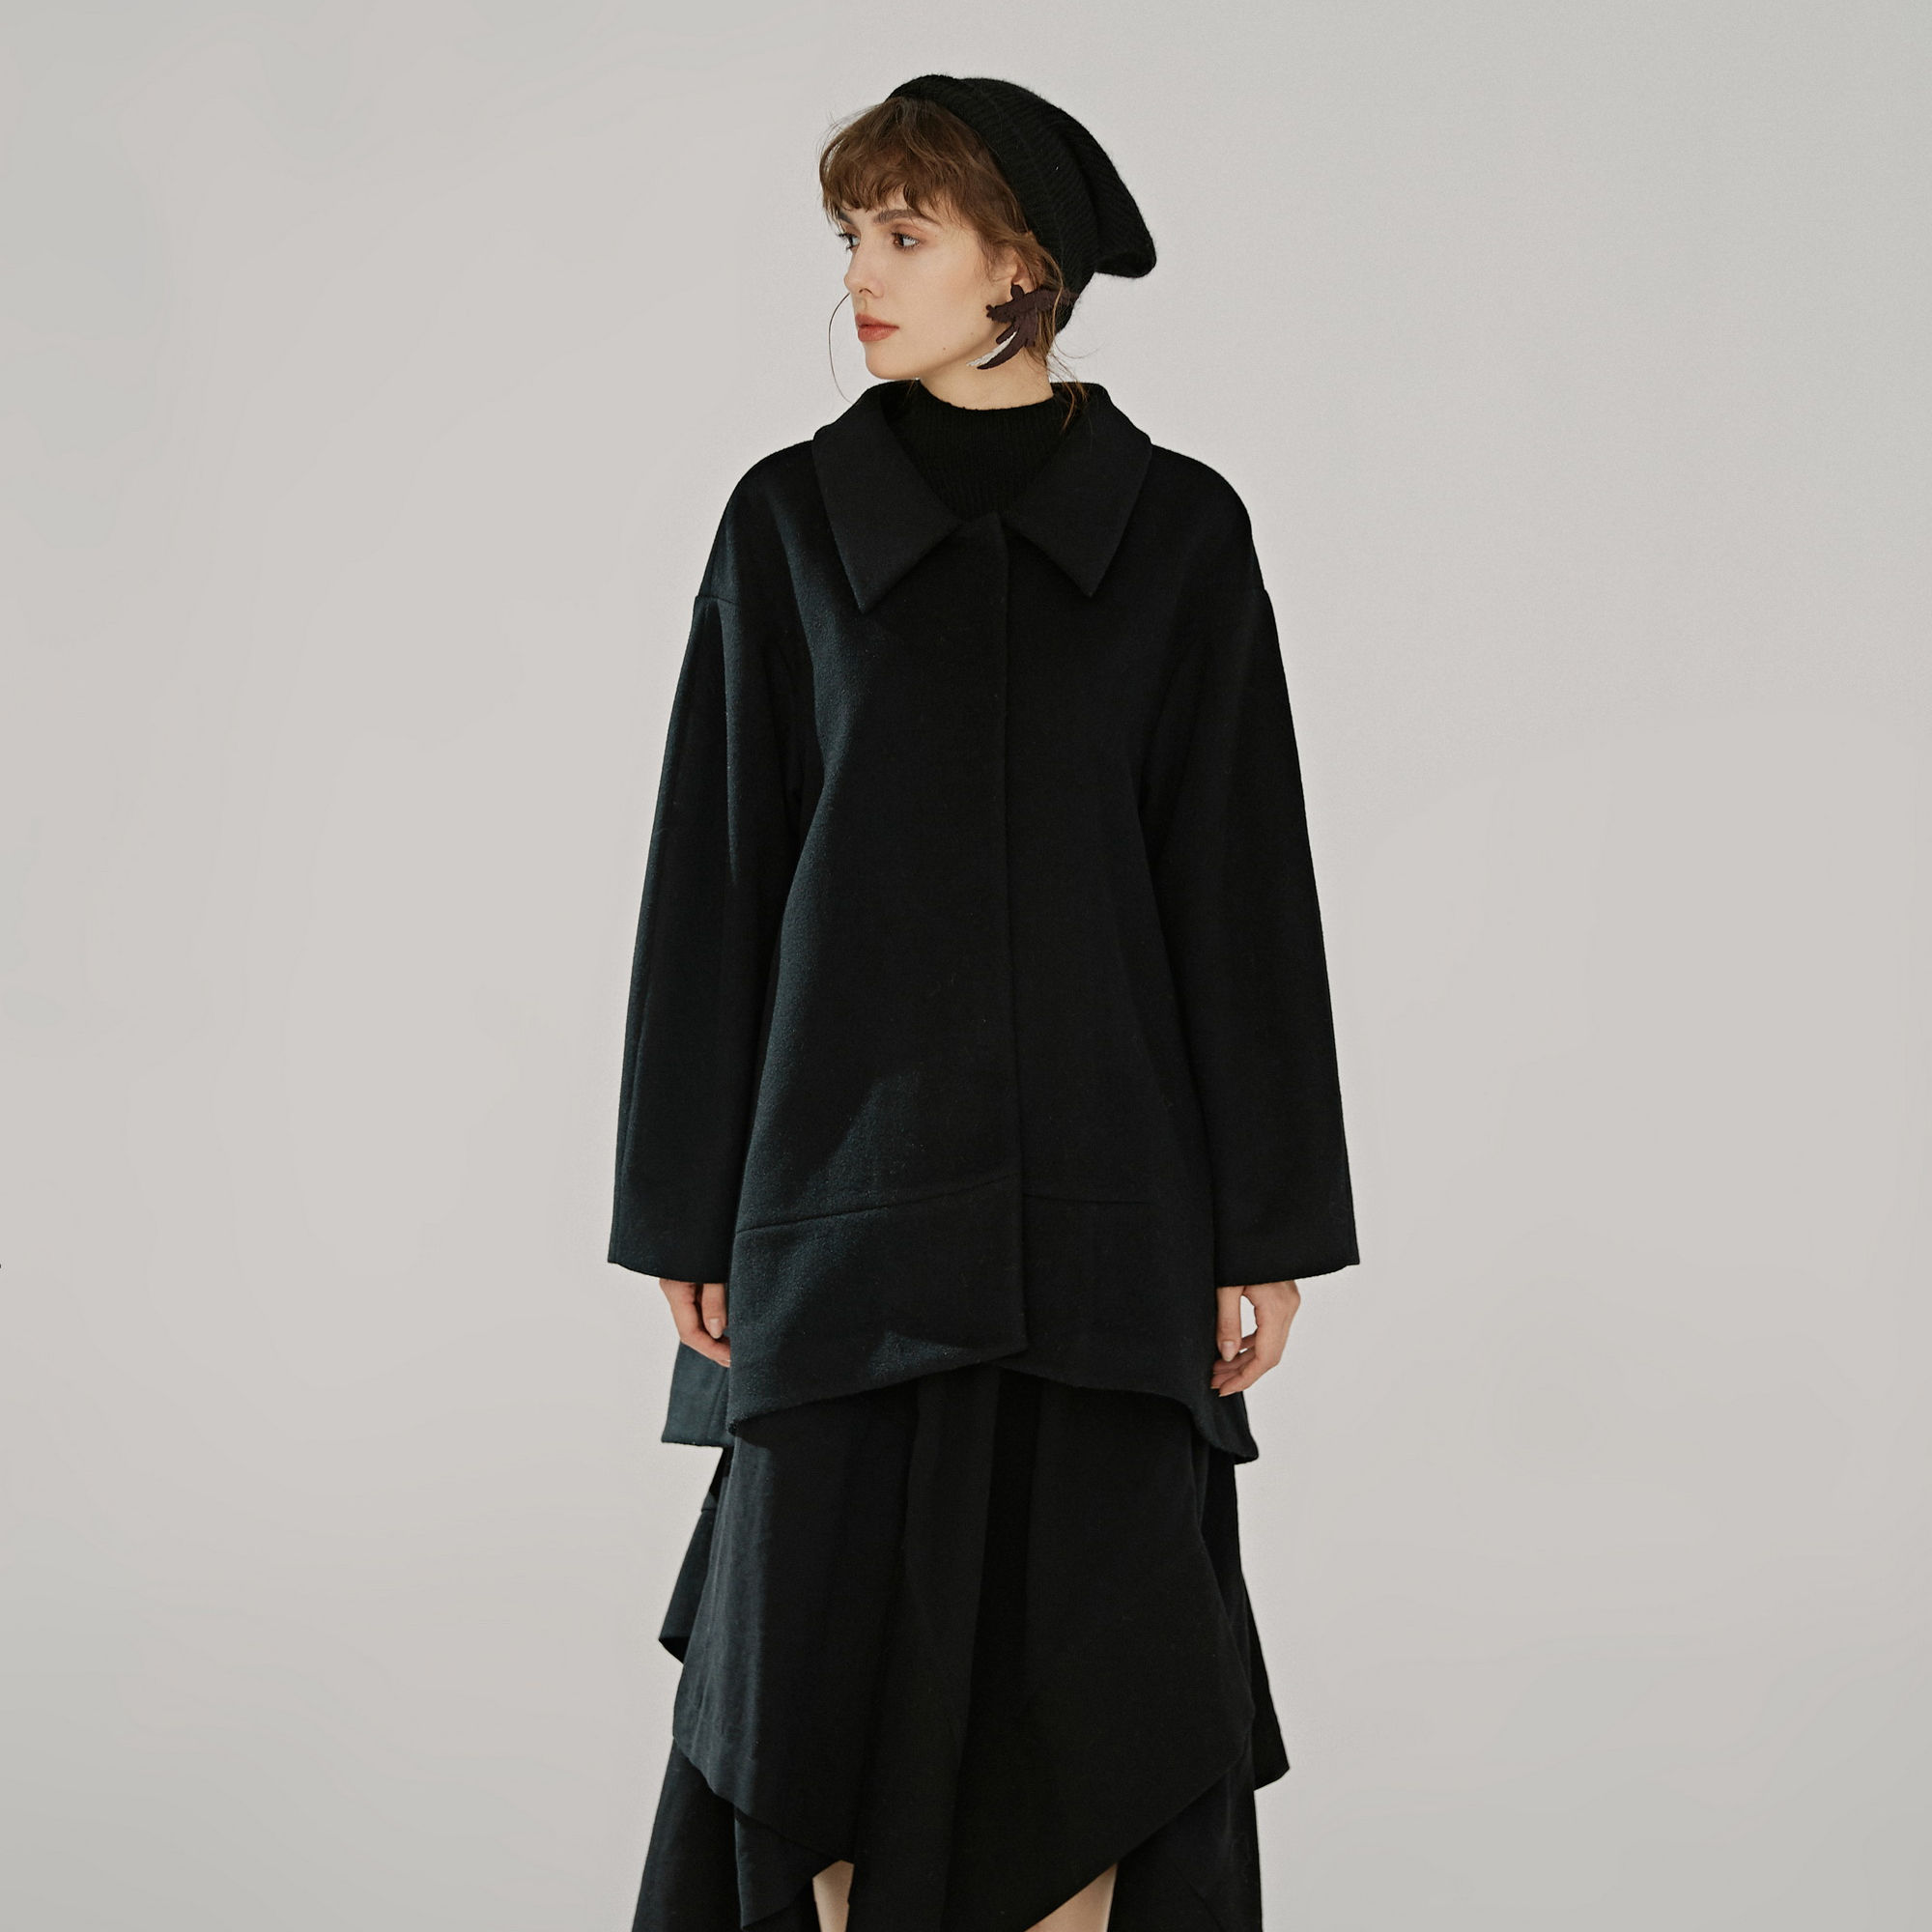 J1908003 Lady's dark style japan women winter coat concise and comfortable cashmere wool coat